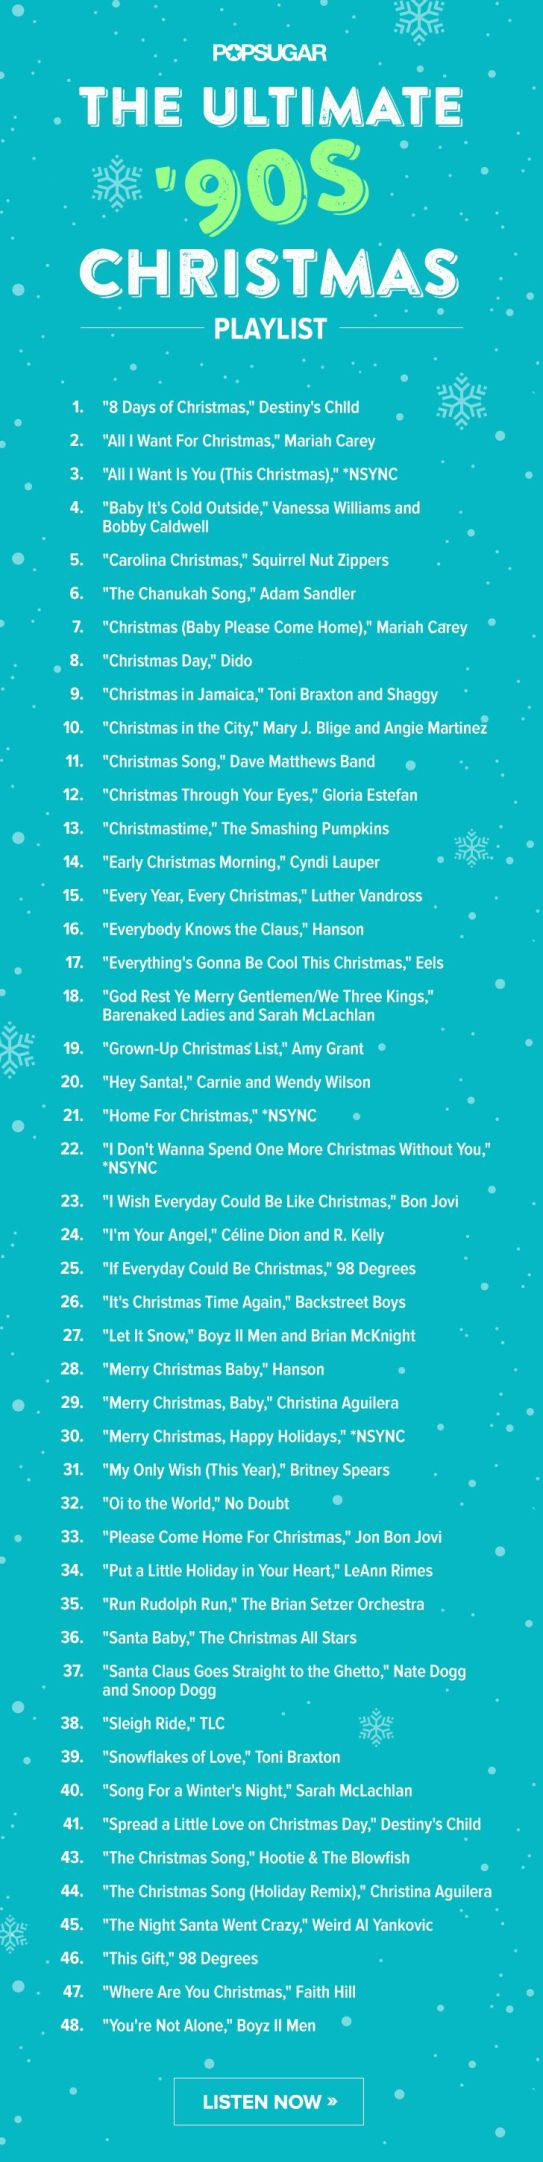 This christmas music playlist is perfect for your next Christmas party!